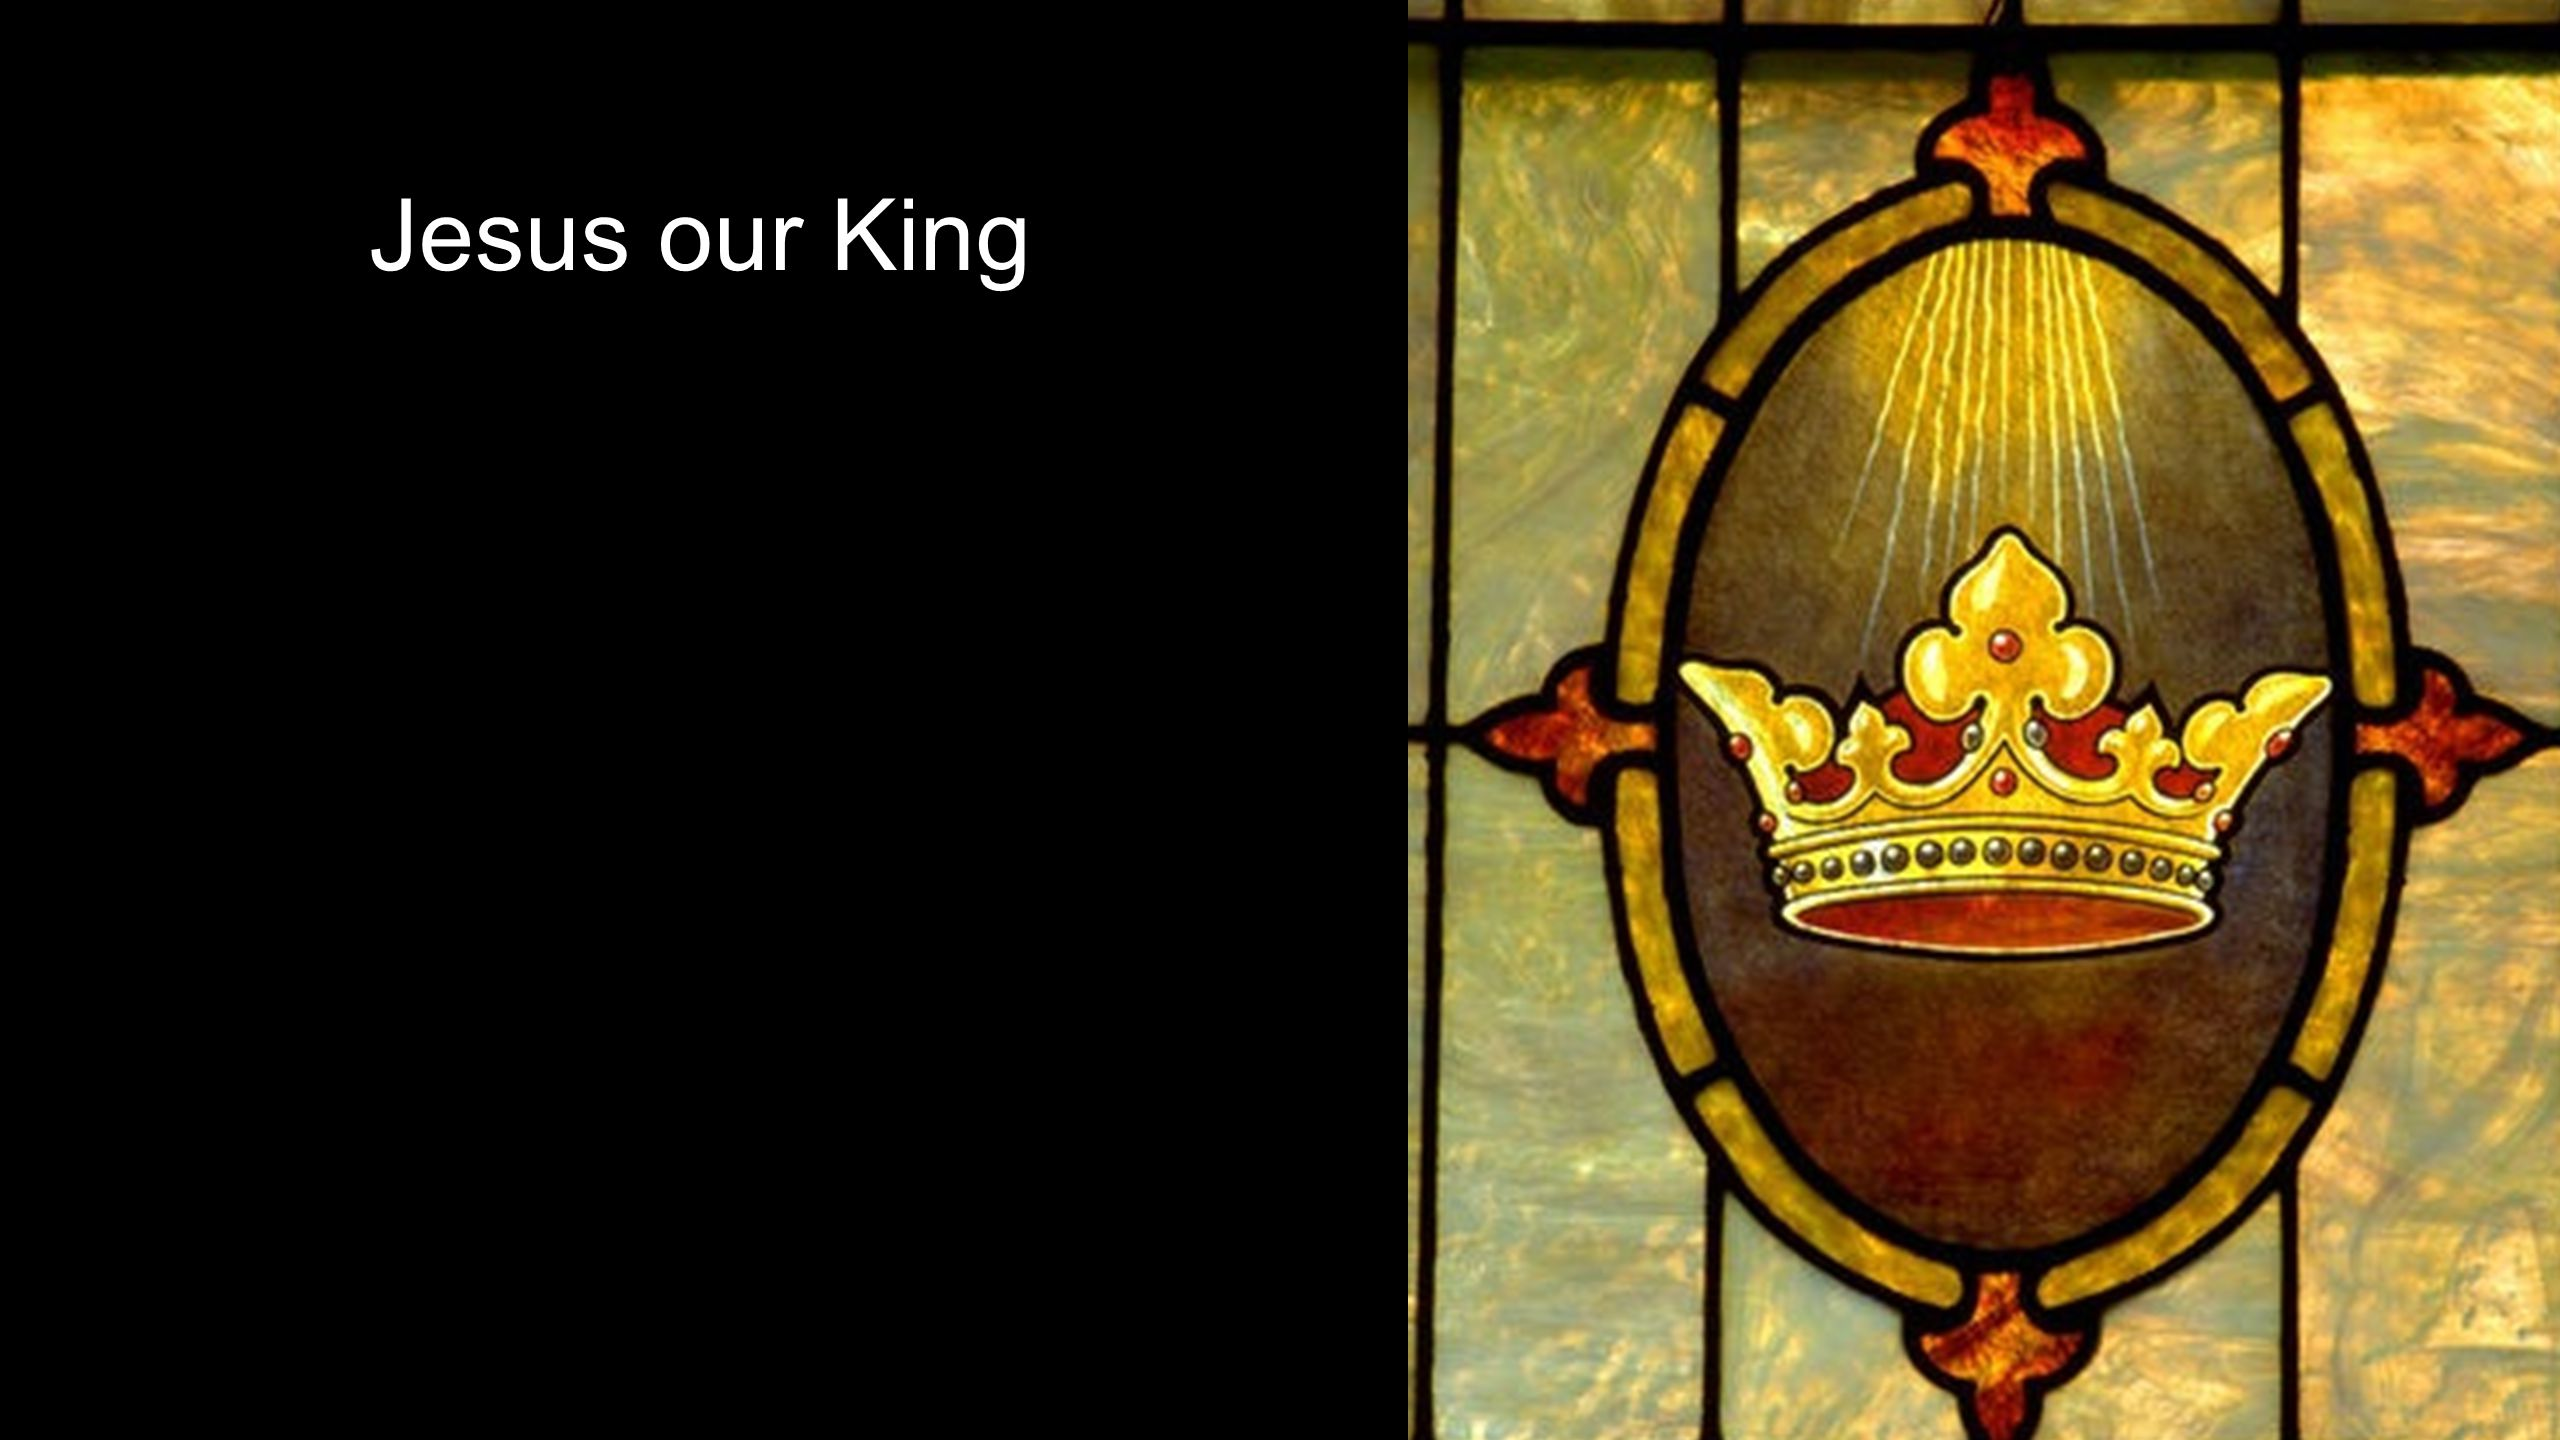 A Royal Announcement: You are my Son, whom I love; with you I am well pleased. -God